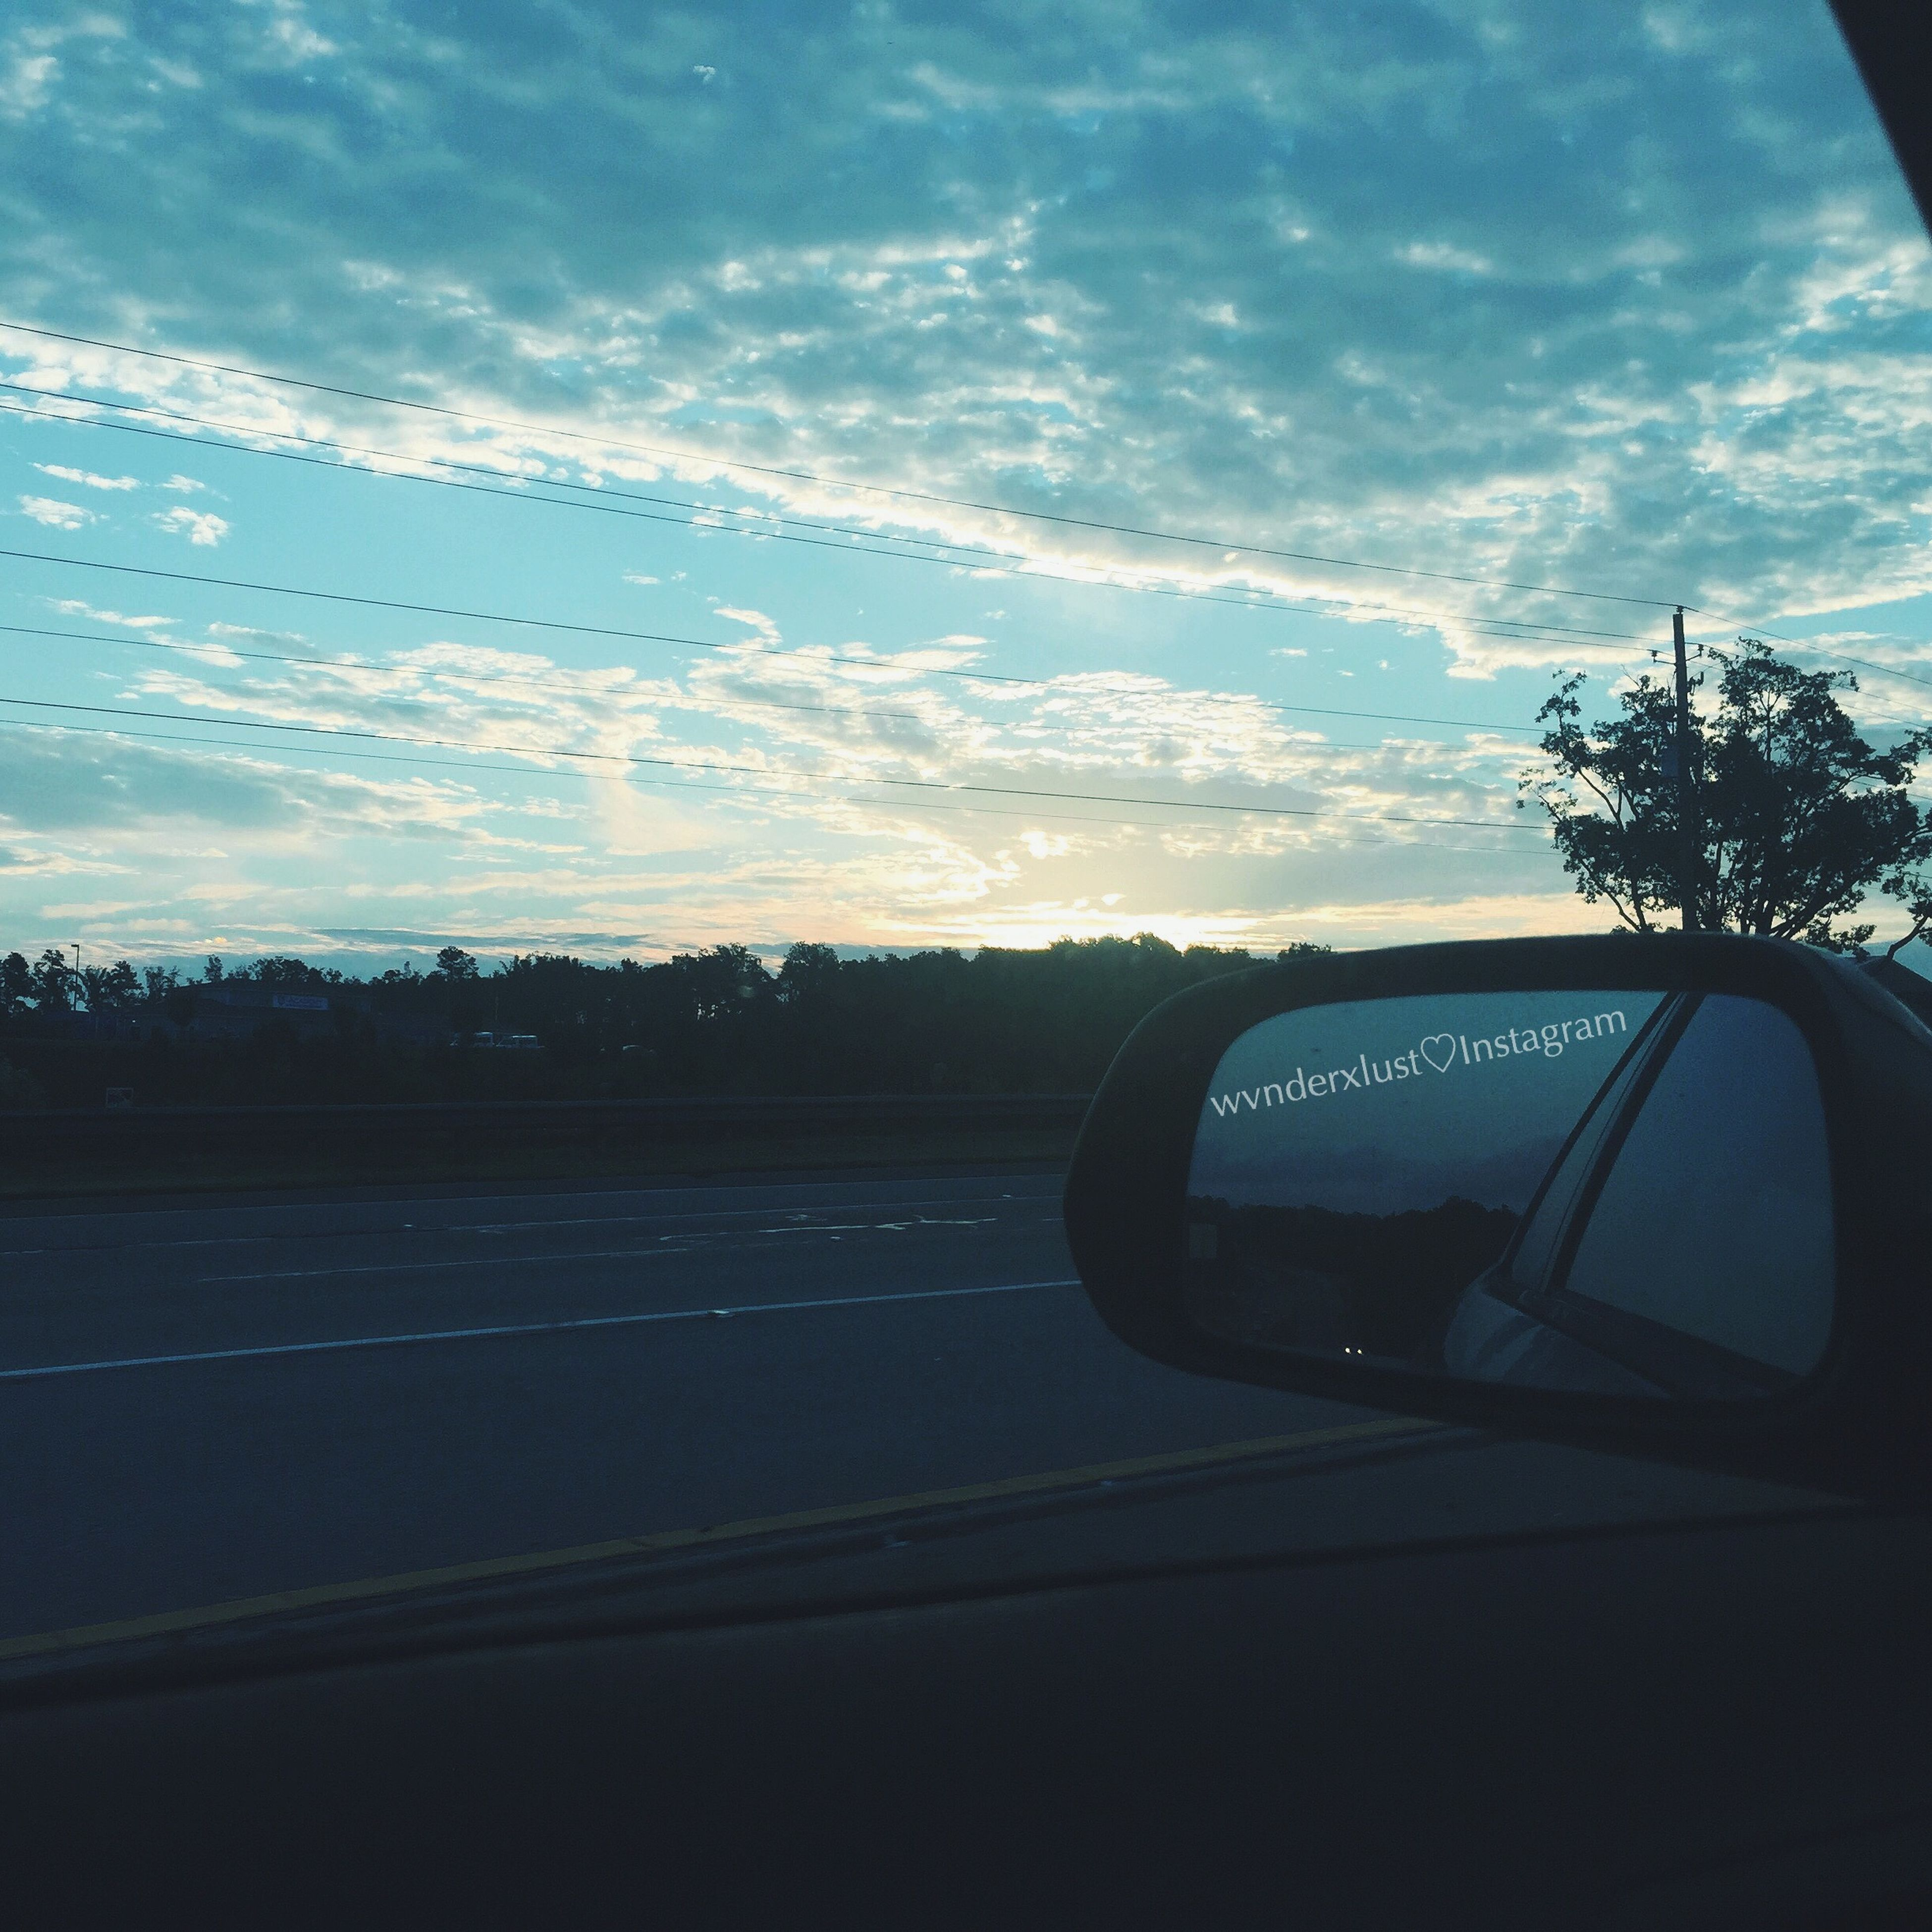 transportation, land vehicle, mode of transport, car, road, sky, vehicle interior, cloud - sky, windshield, car interior, on the move, road marking, glass - material, street, tree, silhouette, travel, cloud, transparent, landscape